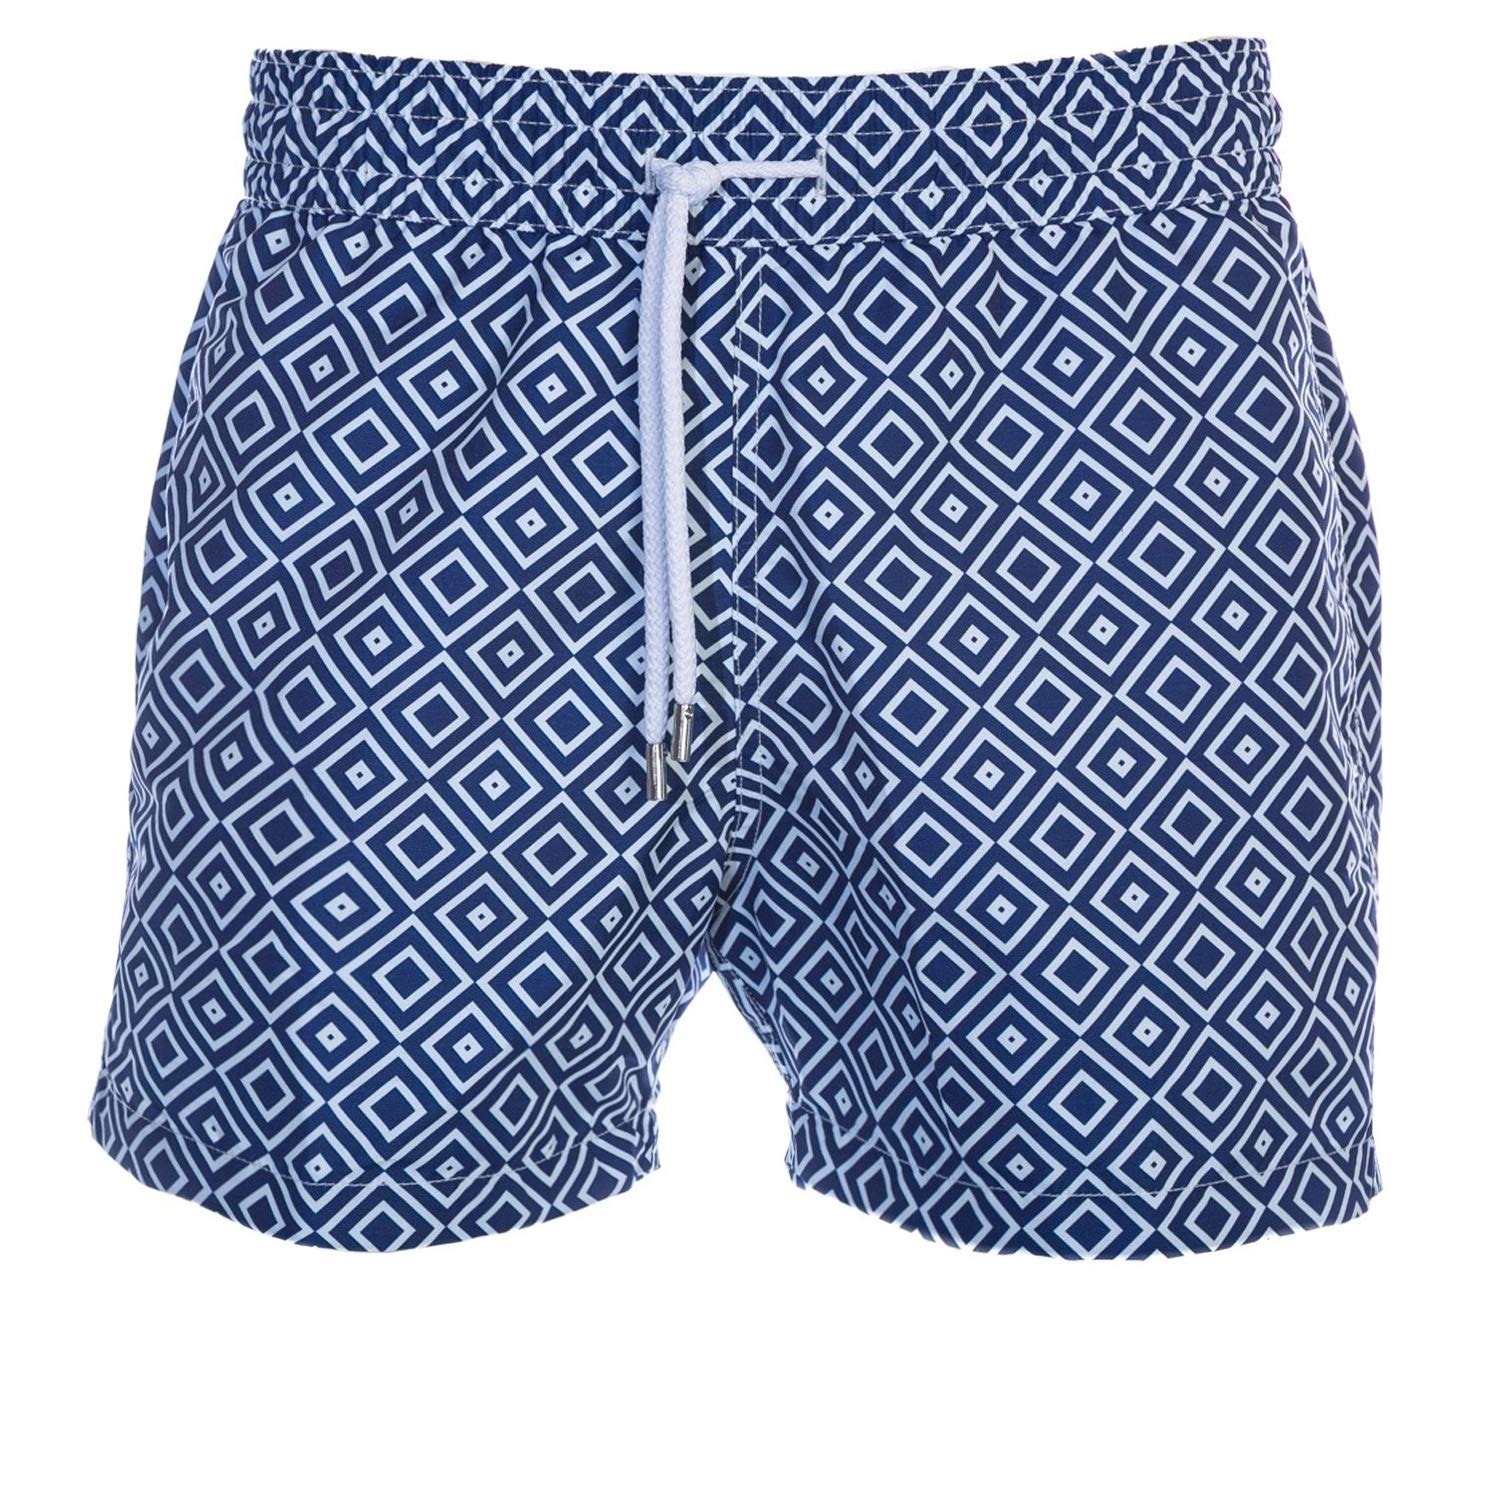 a9ea81ab7f Frescobol Carioca Sport Short Angra Swim Short in Navy at Amazon Men's  Clothing store: